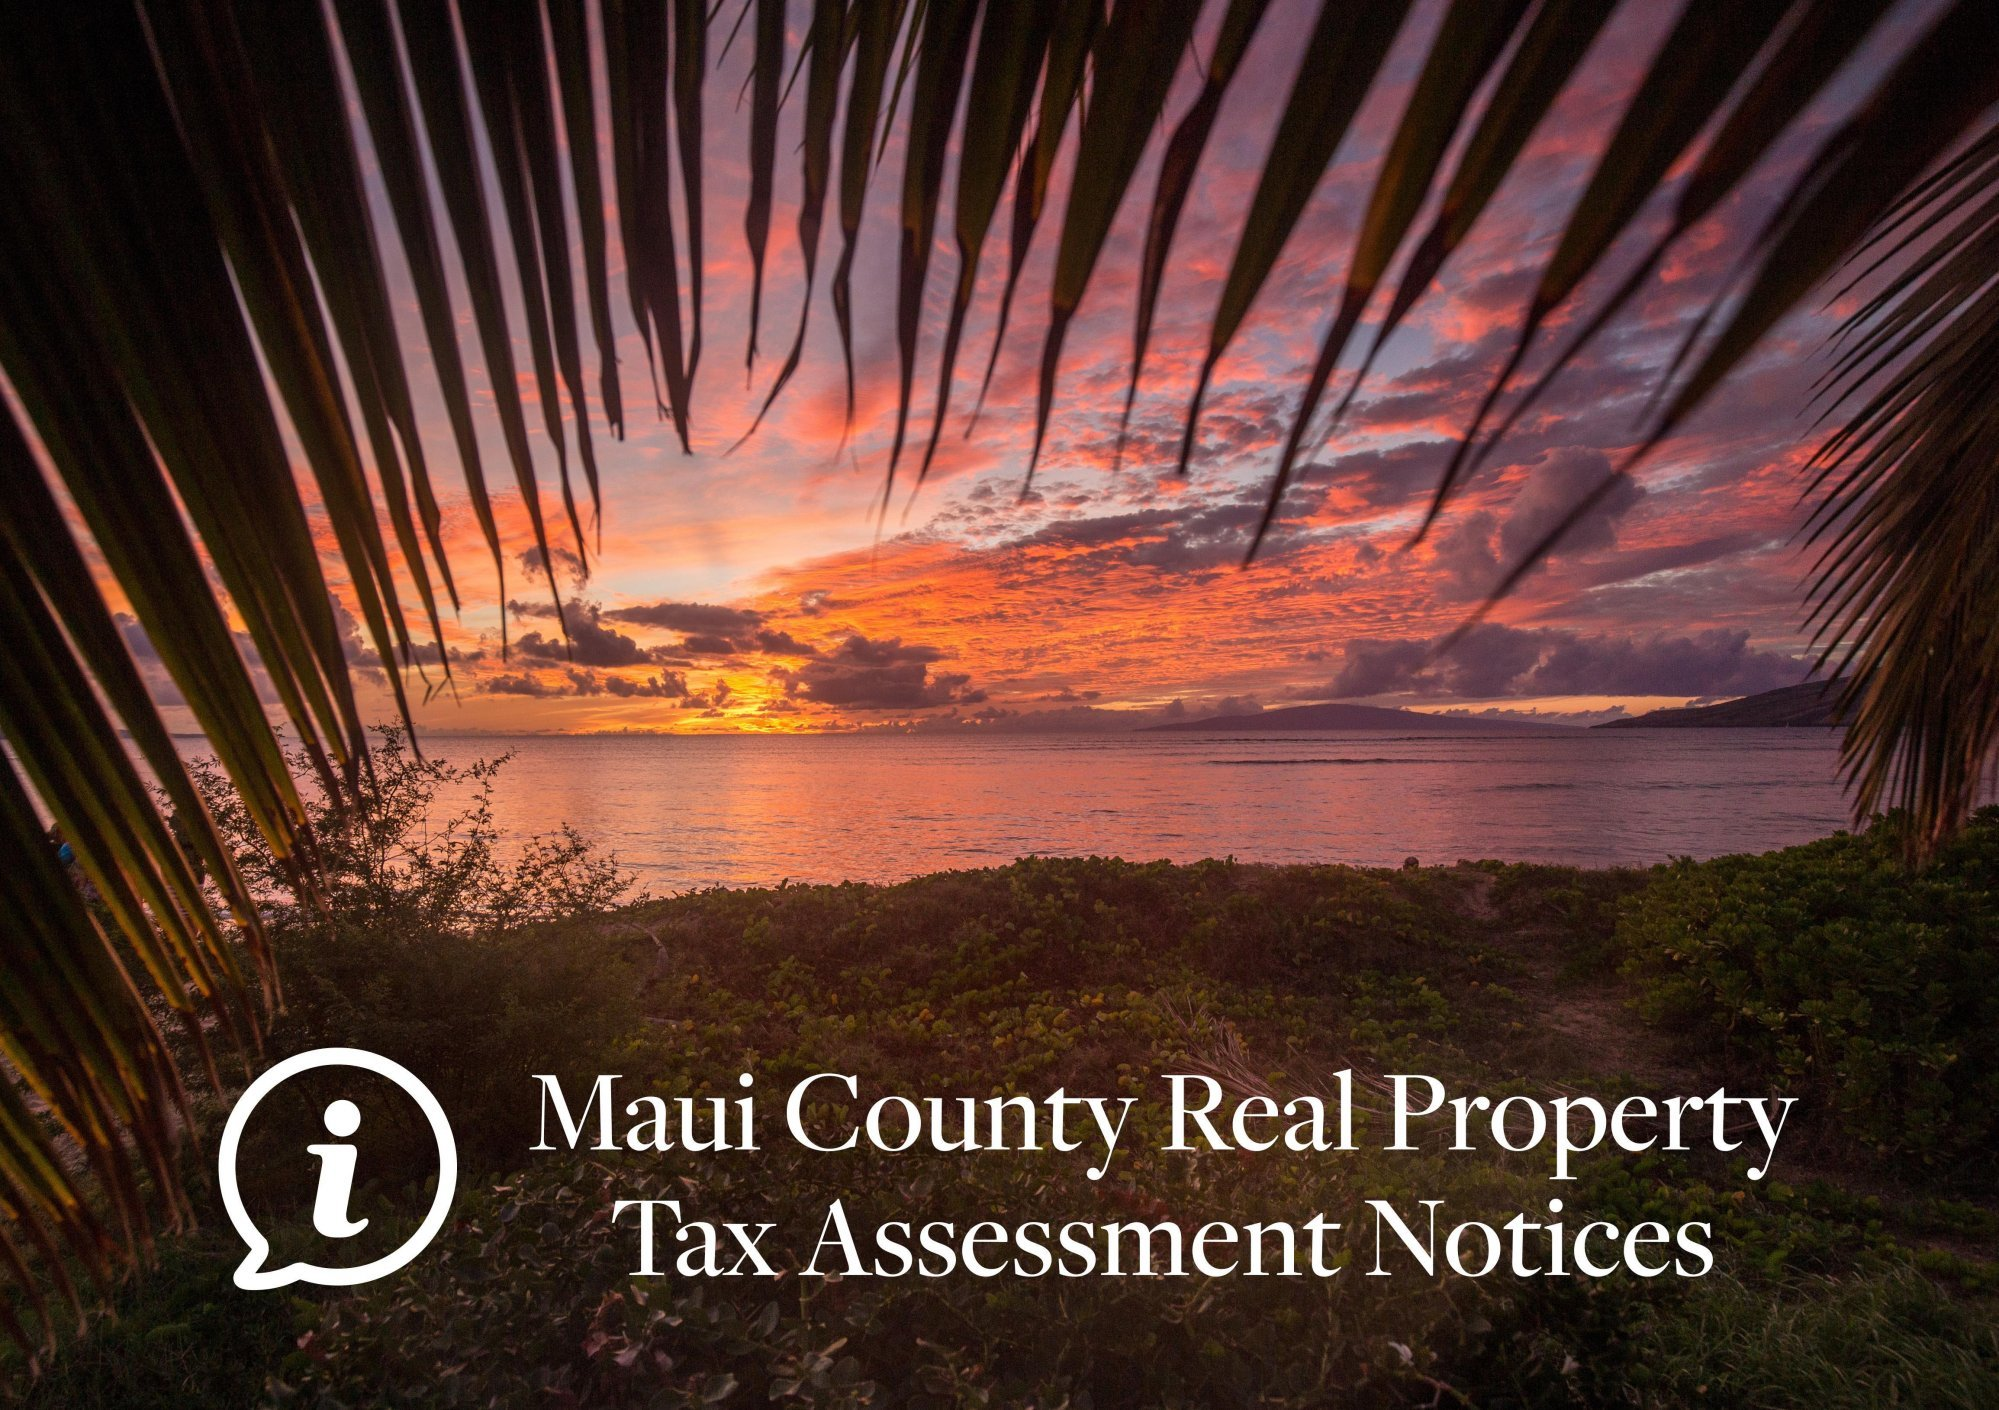 Maui Real Property Tax Assessement Information